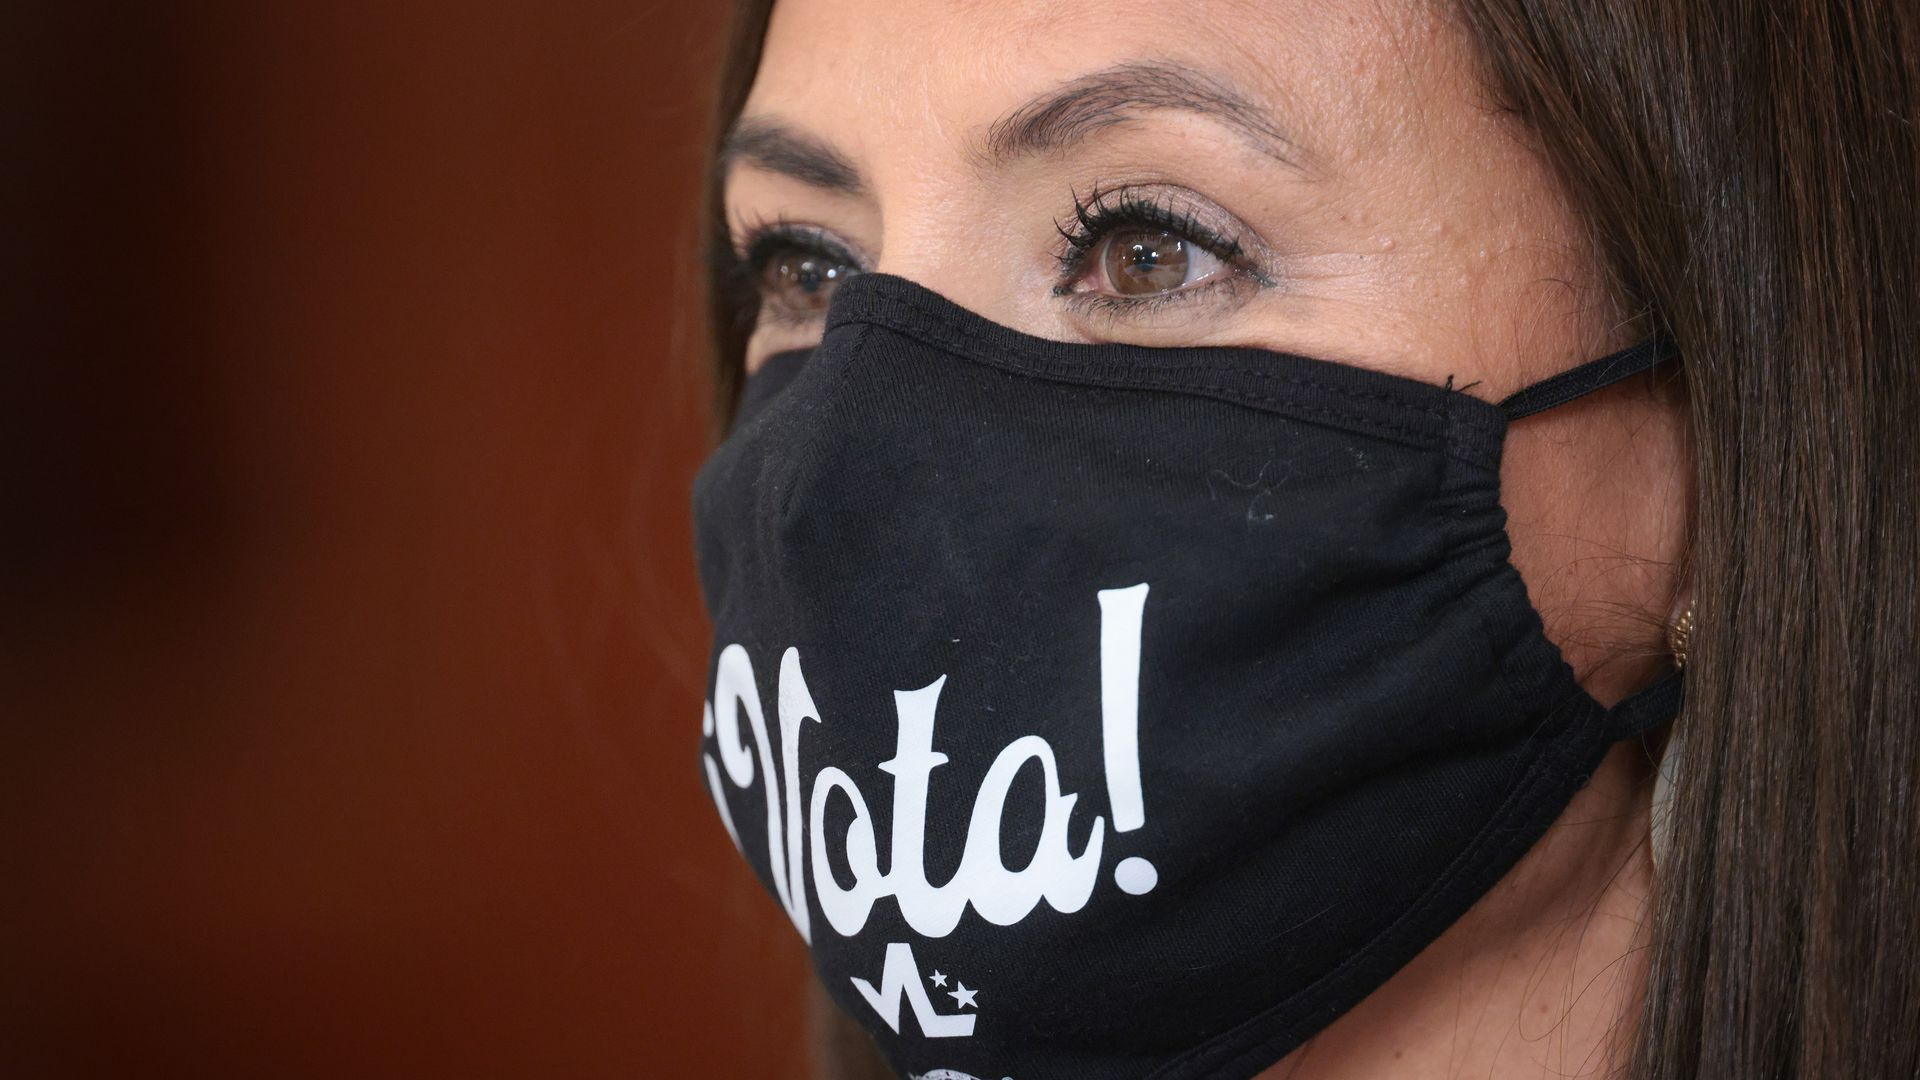 A person wears a Vota! facemask.